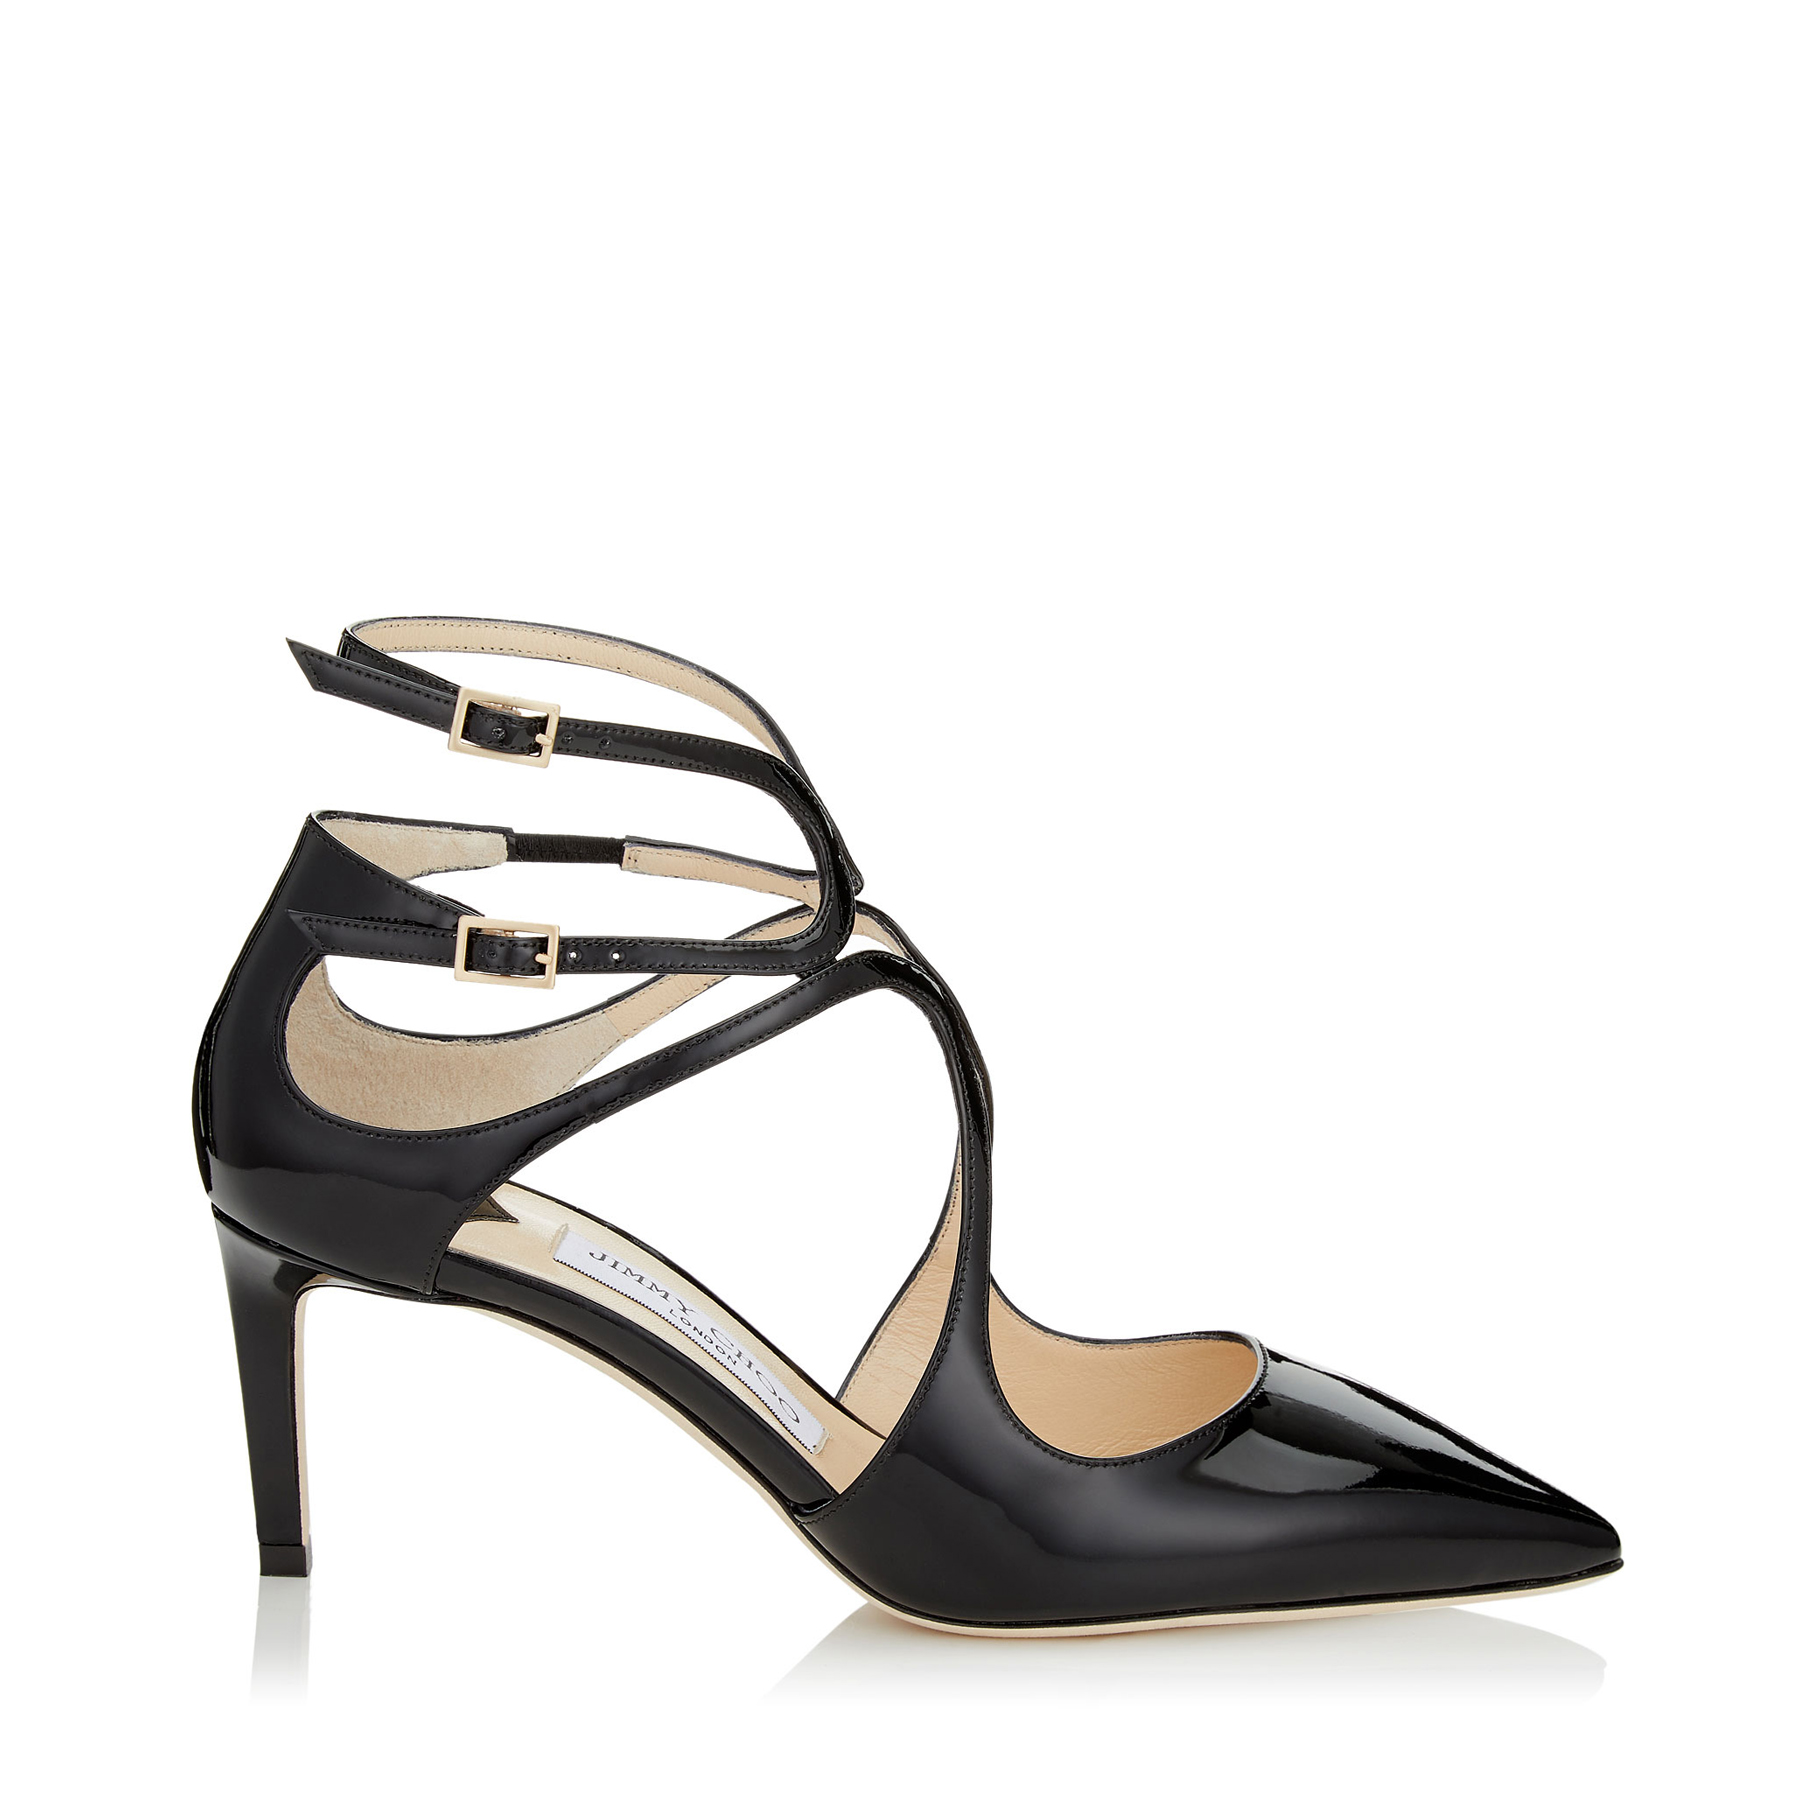 LANCER 65 Black Patent Leather Pointy Toe Pumps by Jimmy Choo